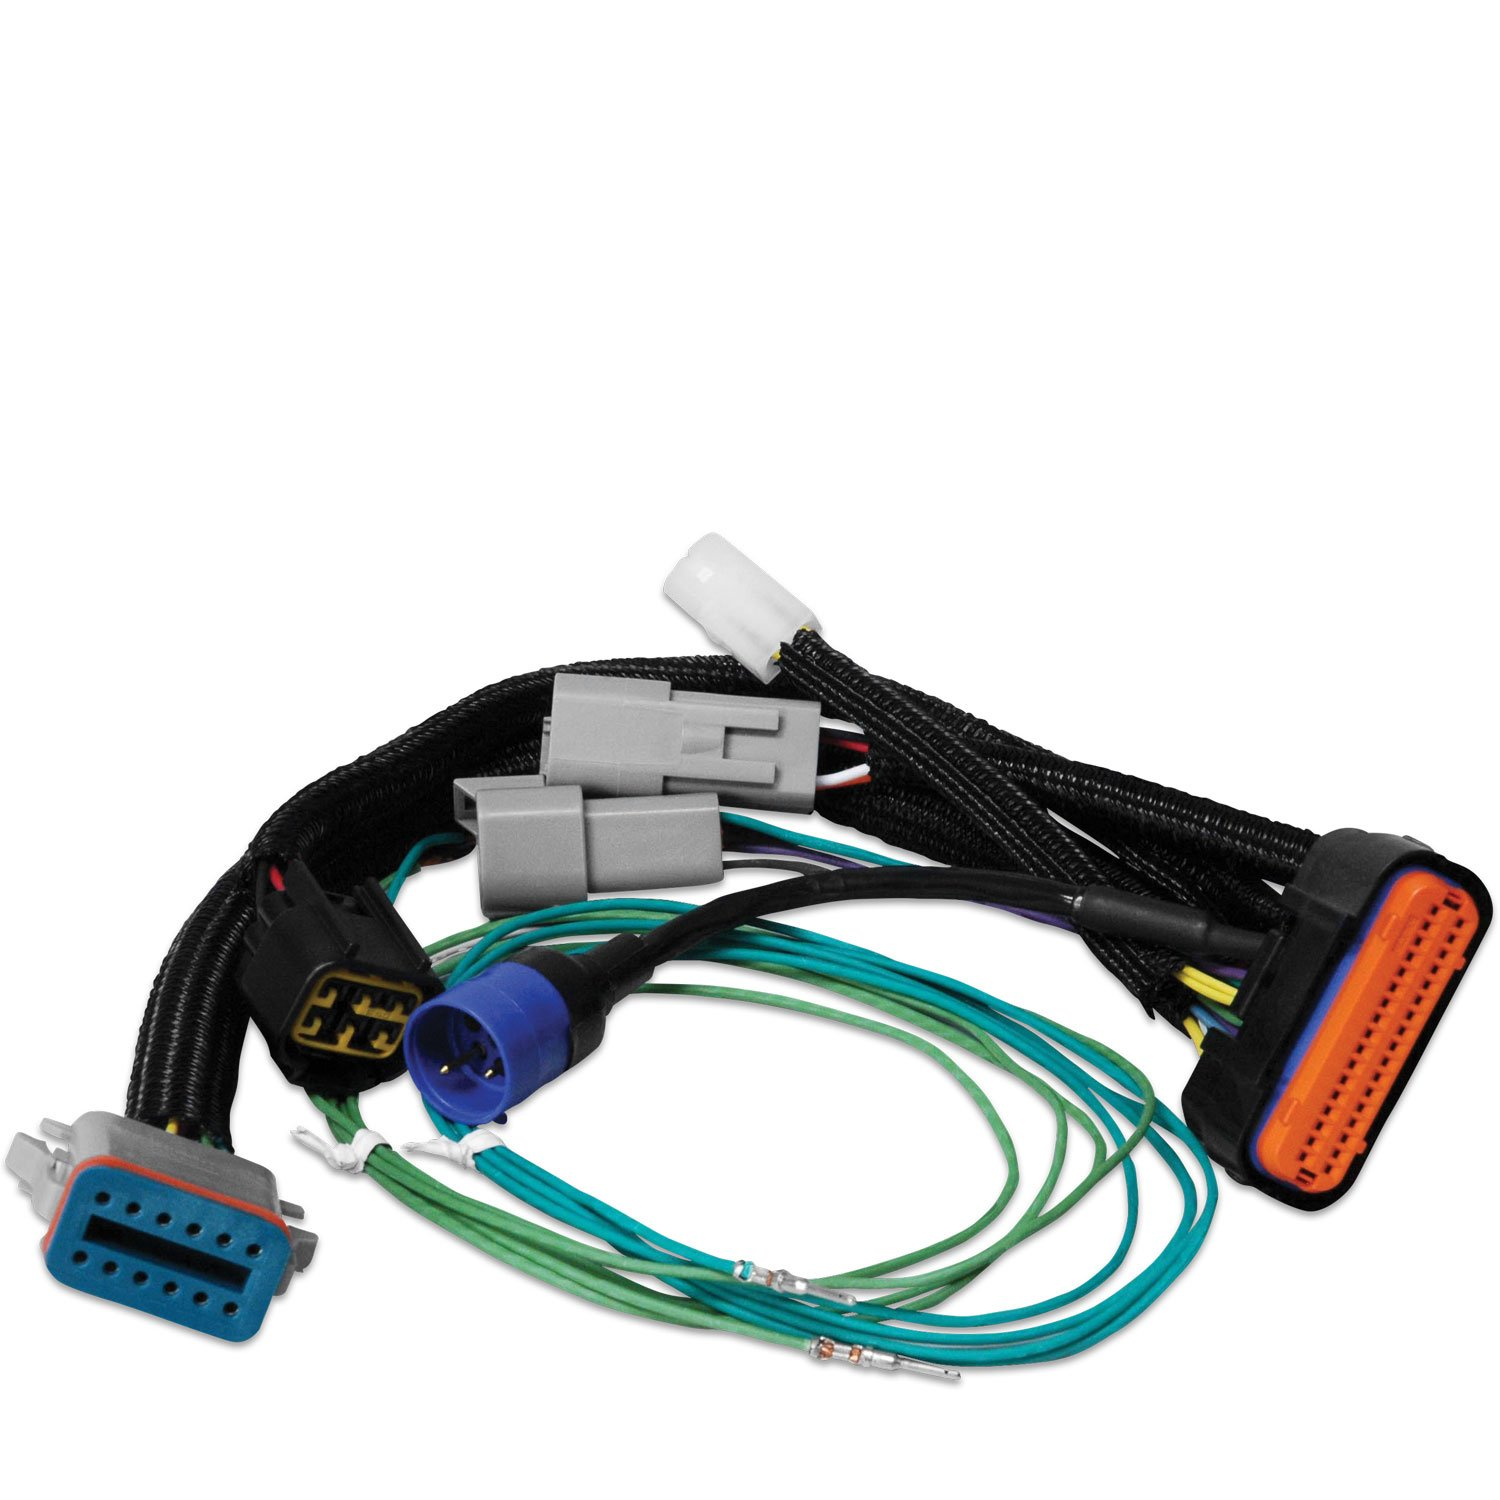 hight resolution of 7789 power grid harness adapter pn 7730 to digital 7 programmable image